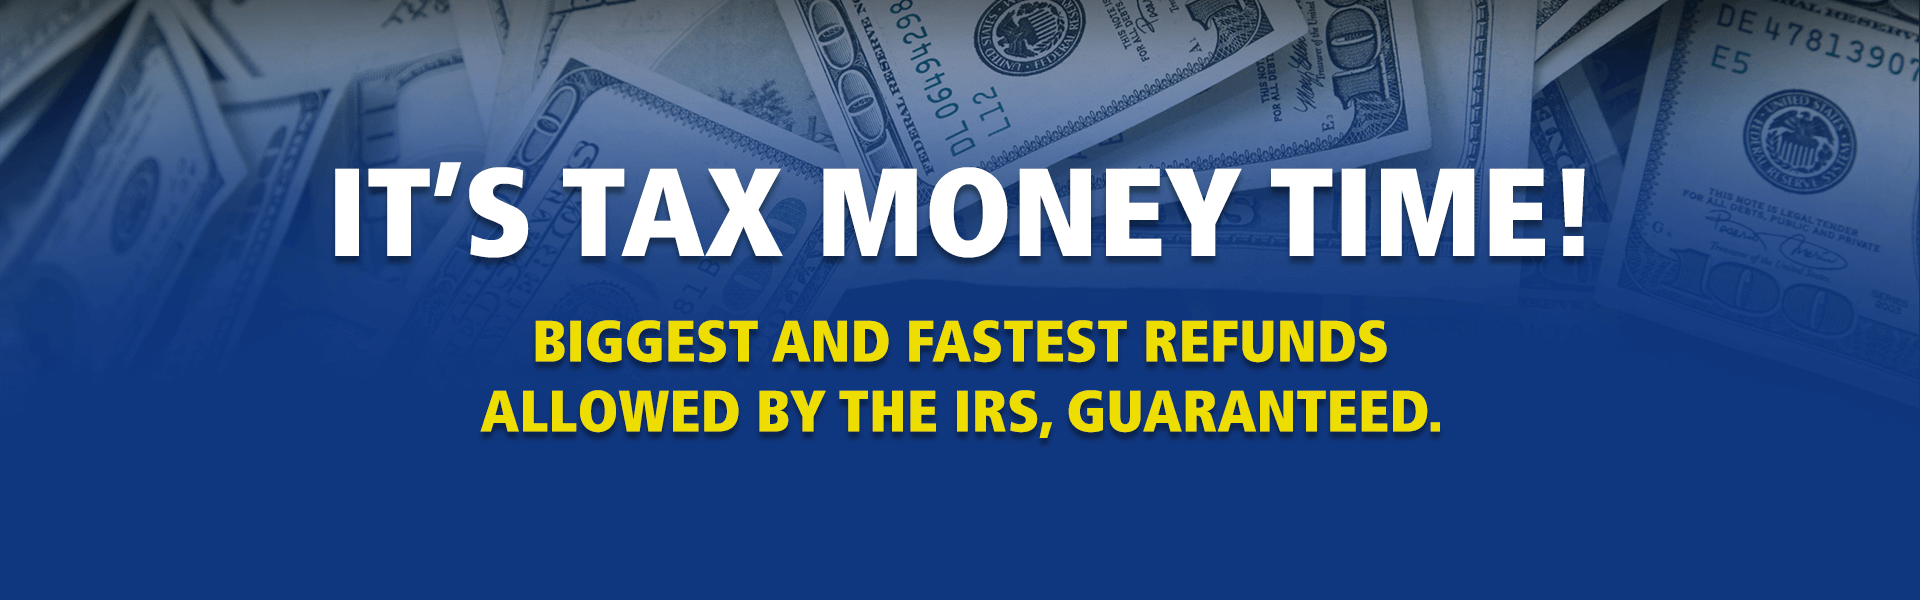 It's Tax Money Time! Get the biggest and fastest refunds allowed by the IRS.